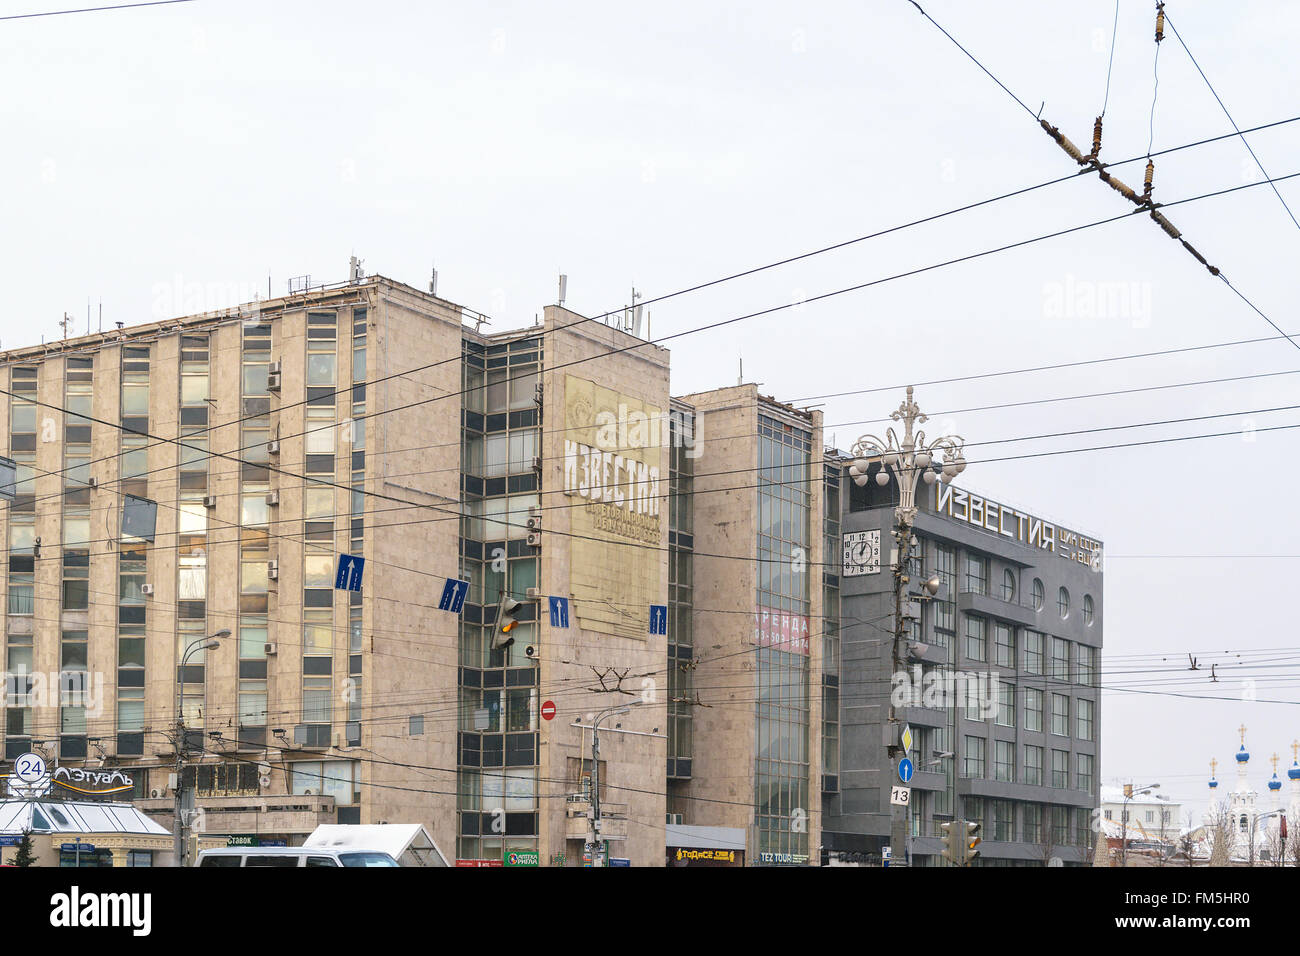 Moscow, Russia - January 05, 2016: The building of editorial office of the newspaper 'Izvestia' on Pushkin - Stock Image